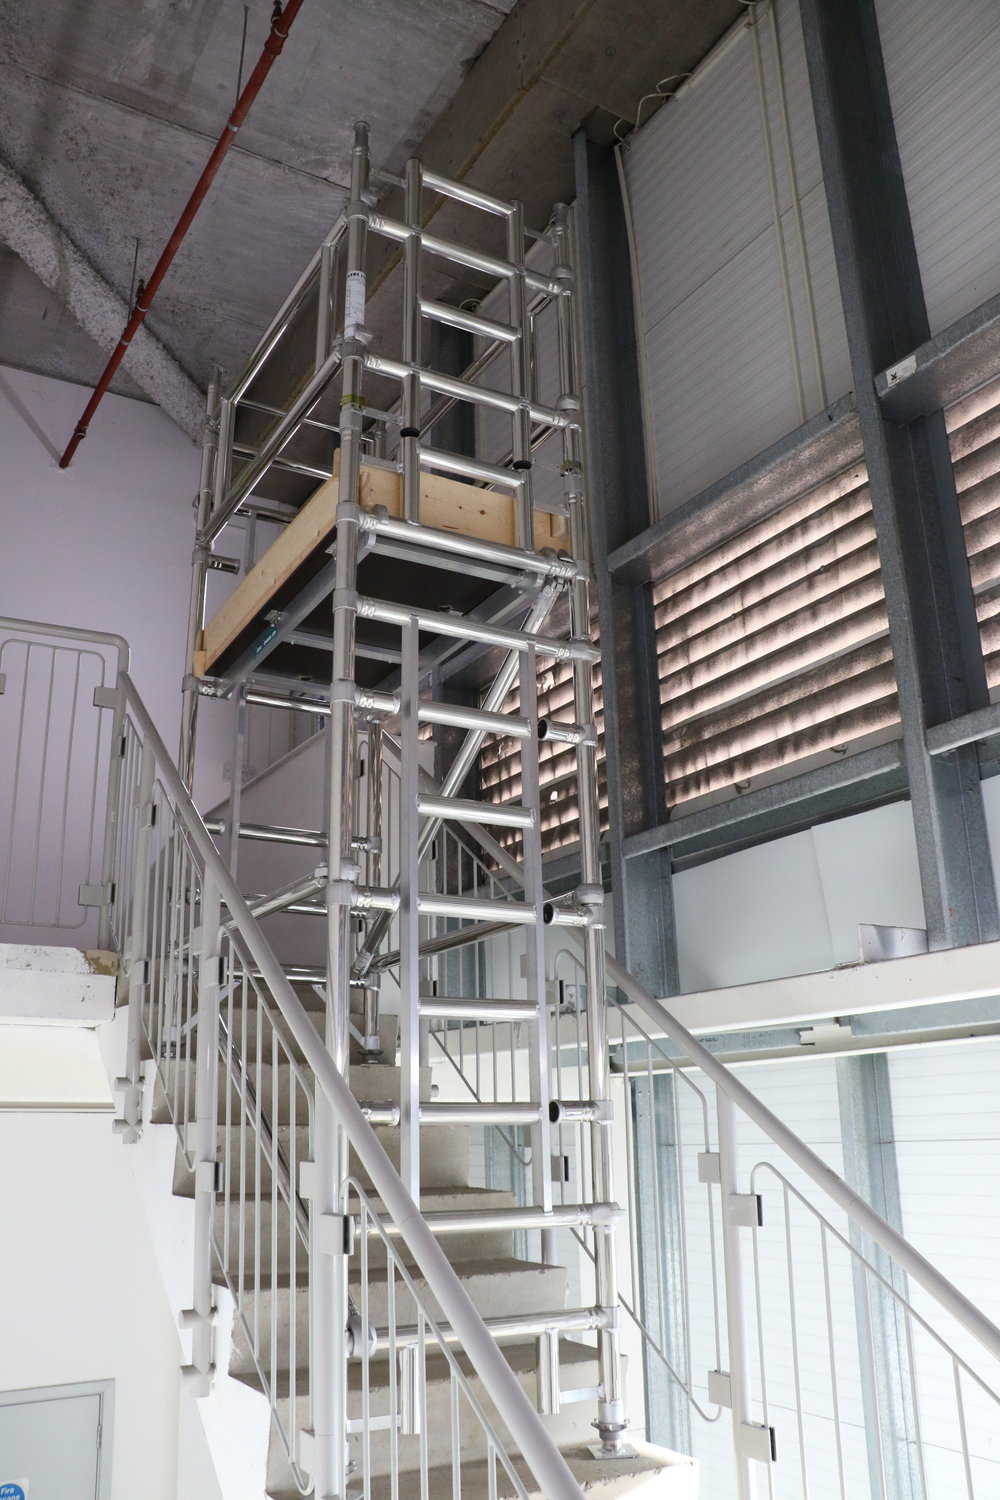 Towers on stairs course